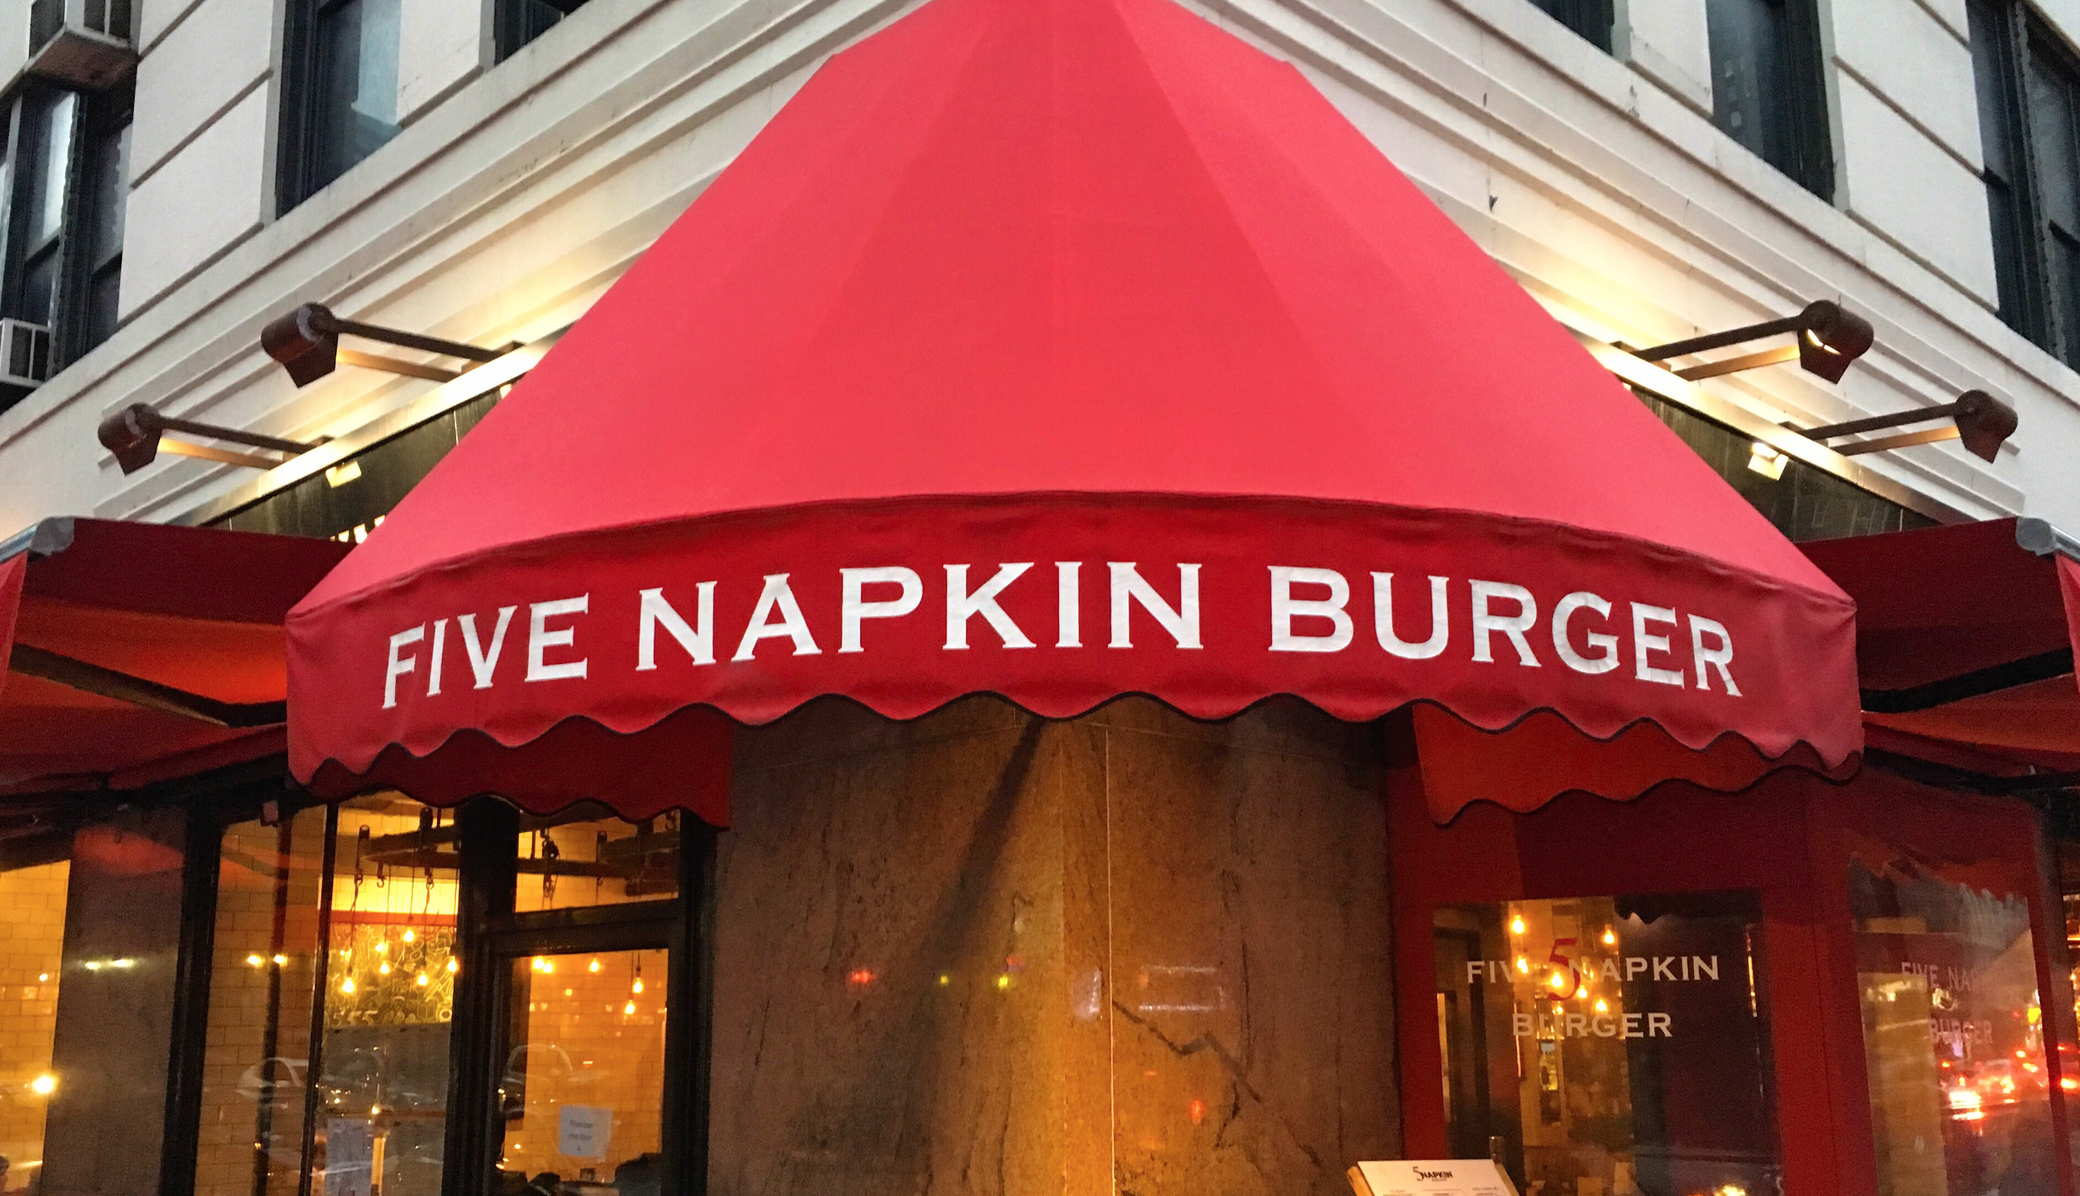 We can't thank 5 Napkin Burger enough!